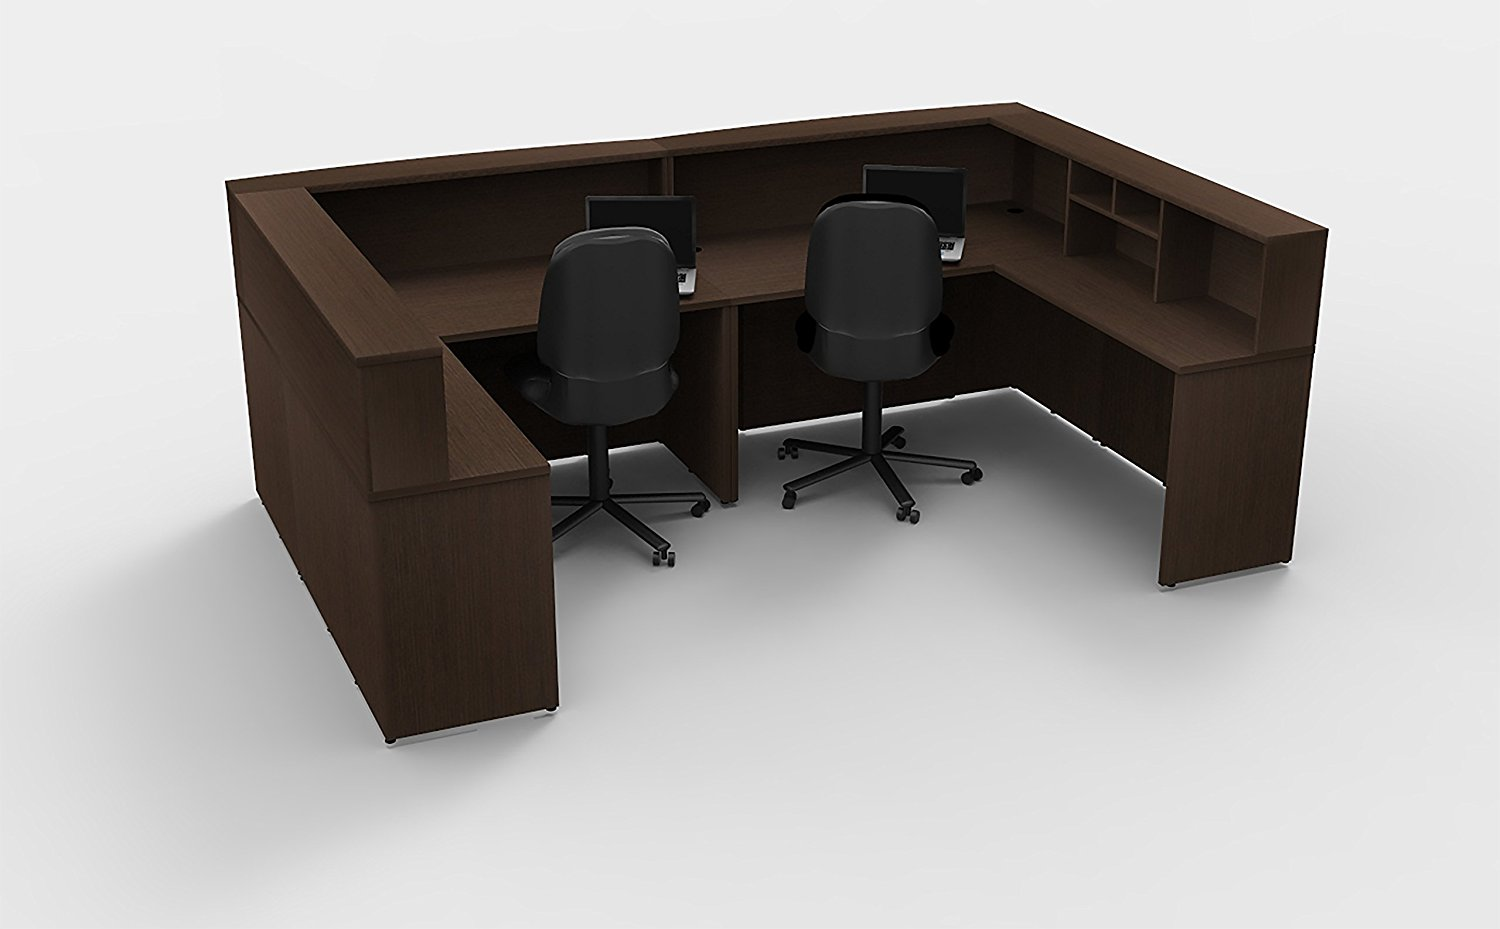 Office Reception Desk Reception Corner Collaboration Furniture Model 4307 8 Pc Group Contemporary Espresso color. Update Your Spaces with Commercial Grade Reception Collaboration Furniture.